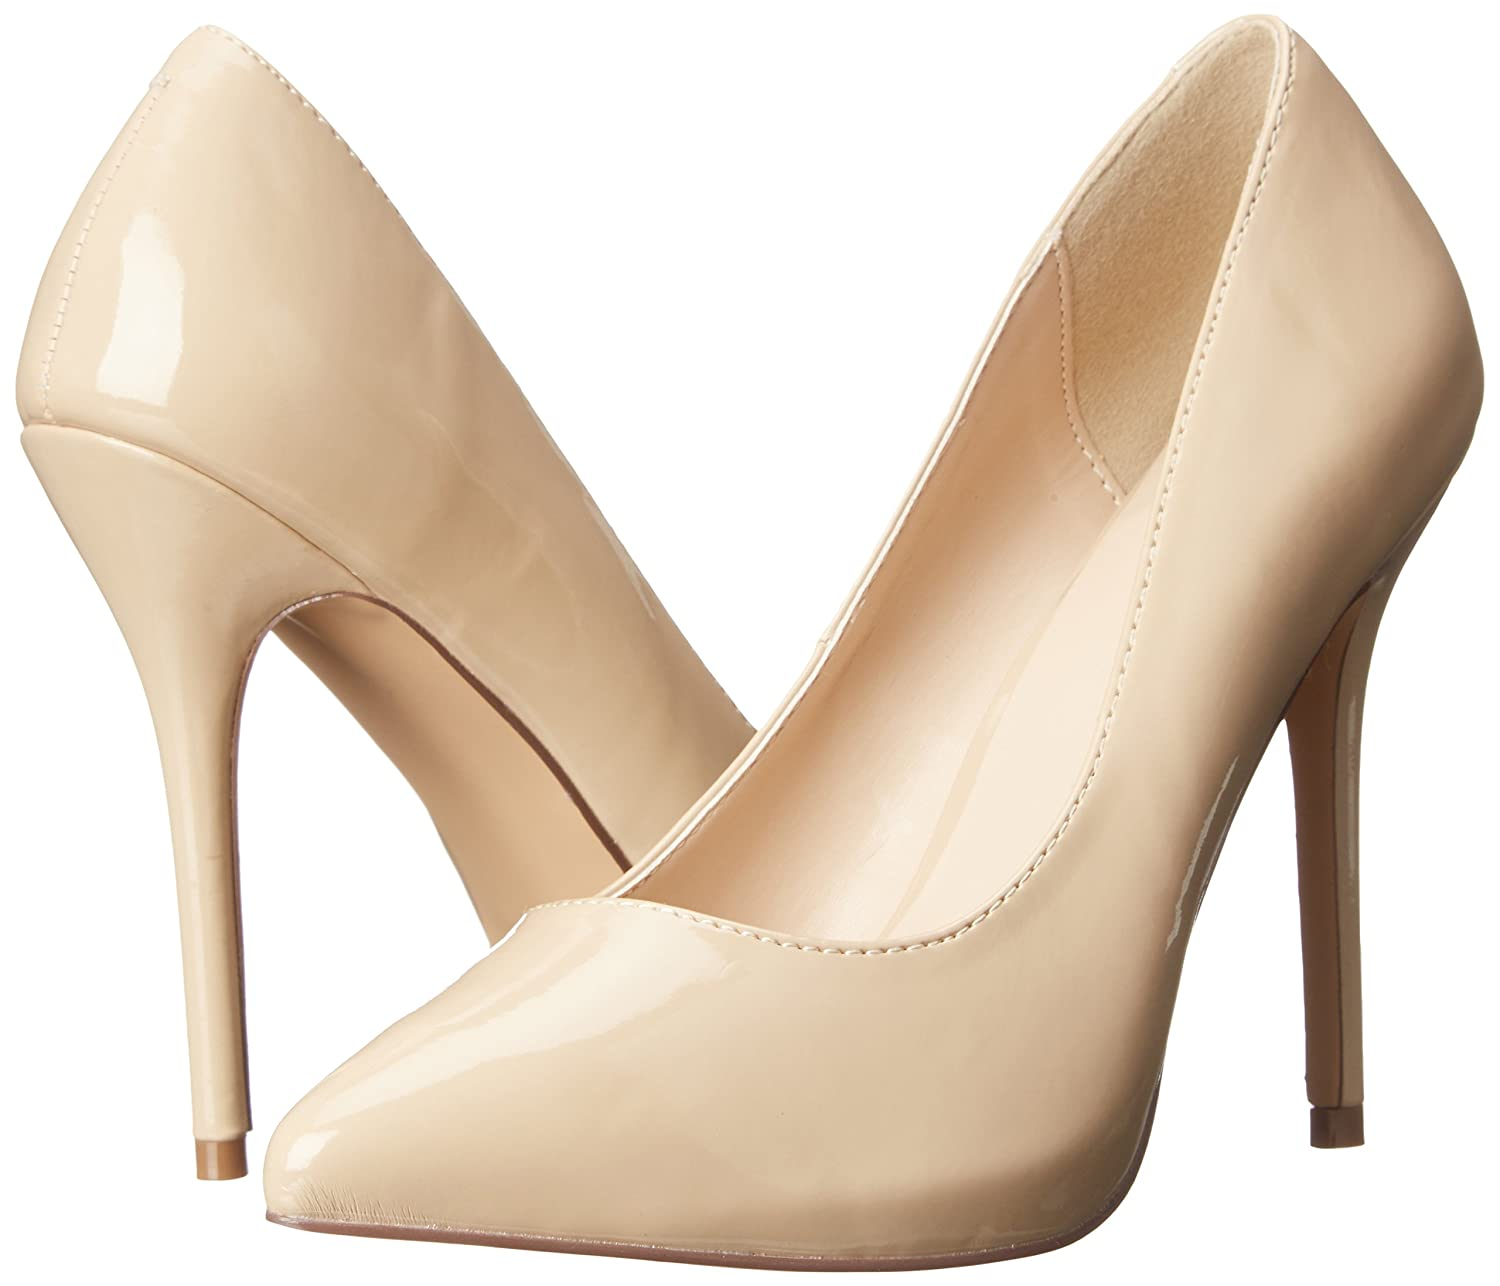 Pleaser AMUSE-20, Damen Pumps, Plateau Pumps, Damen Beige (Cremefarben (Cream Pat)), 43 EU (10 UK)(13 US) - 6e5af0